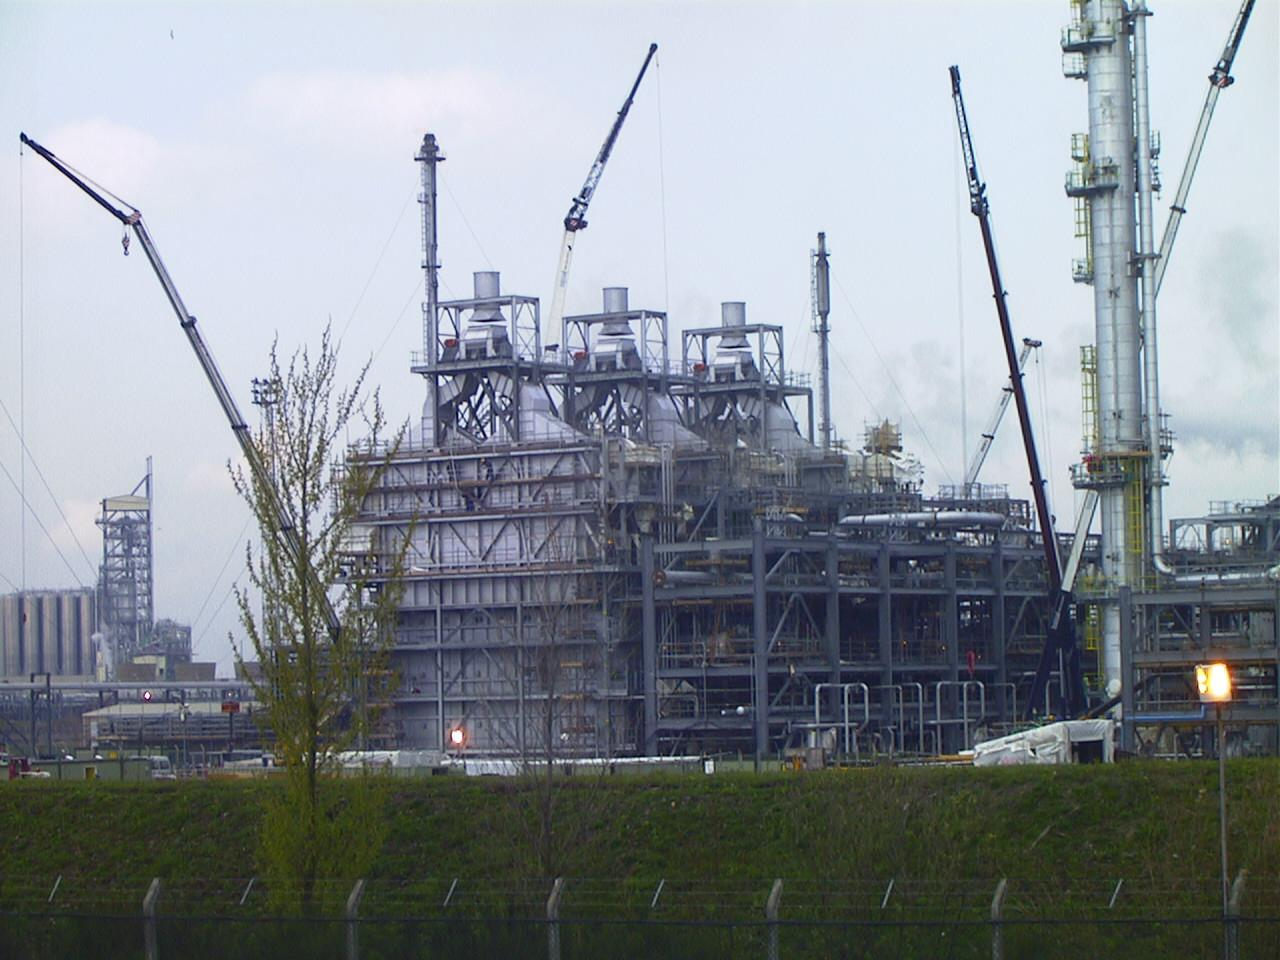 Gas Cracking Towers at Ineos